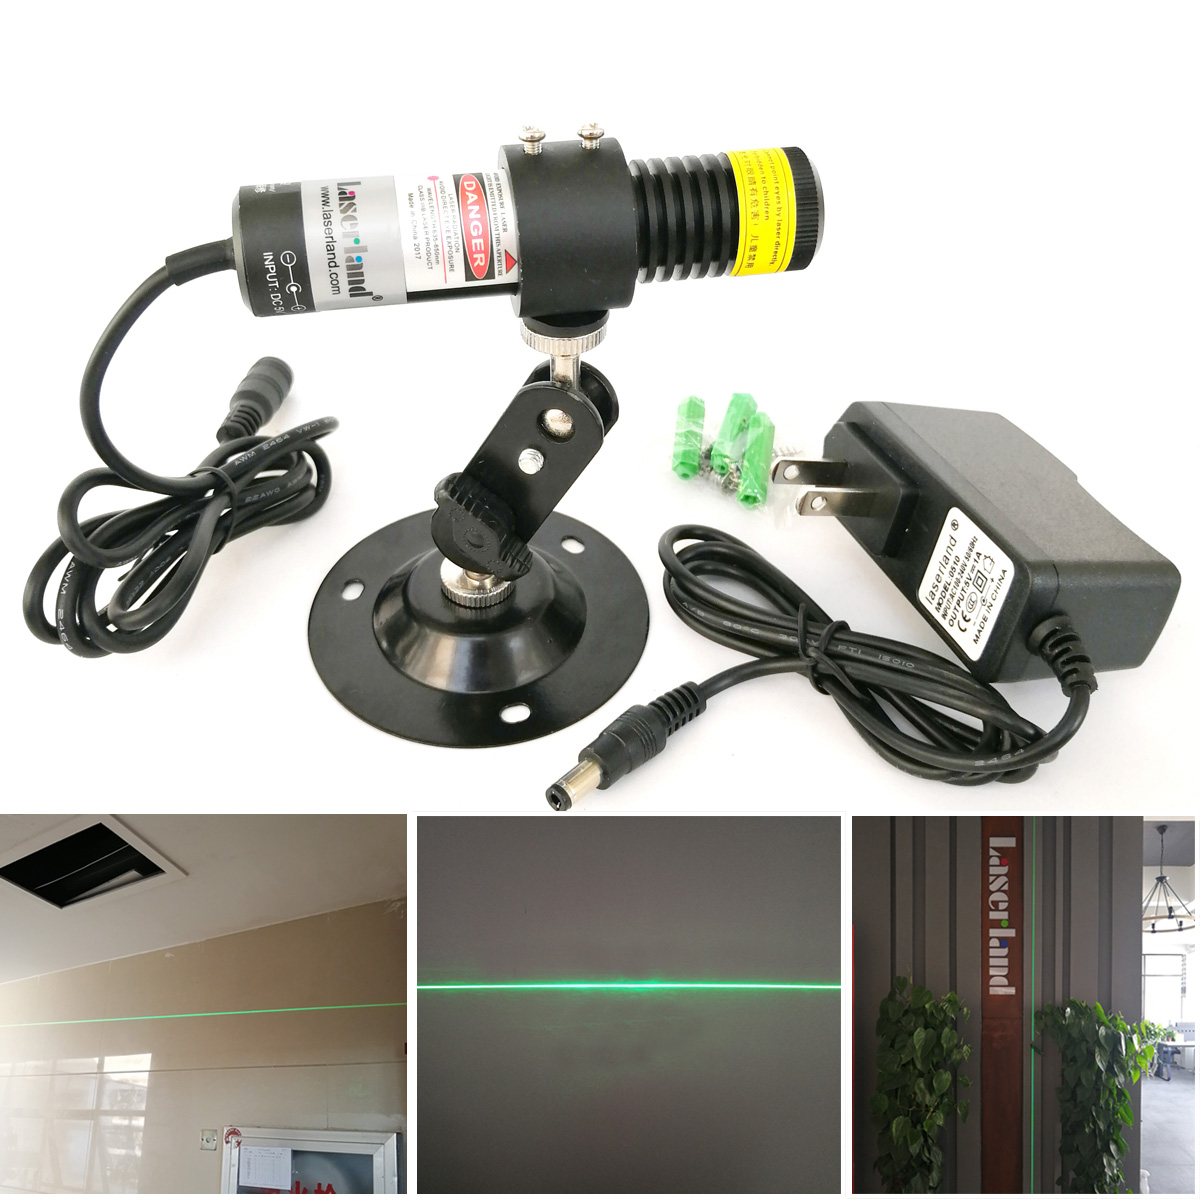 520nm 80mw Green Line Generator Laser Diode Module For Stone Wood Cutting Low Working Temp Osram LD In Dust-proof Water-proof